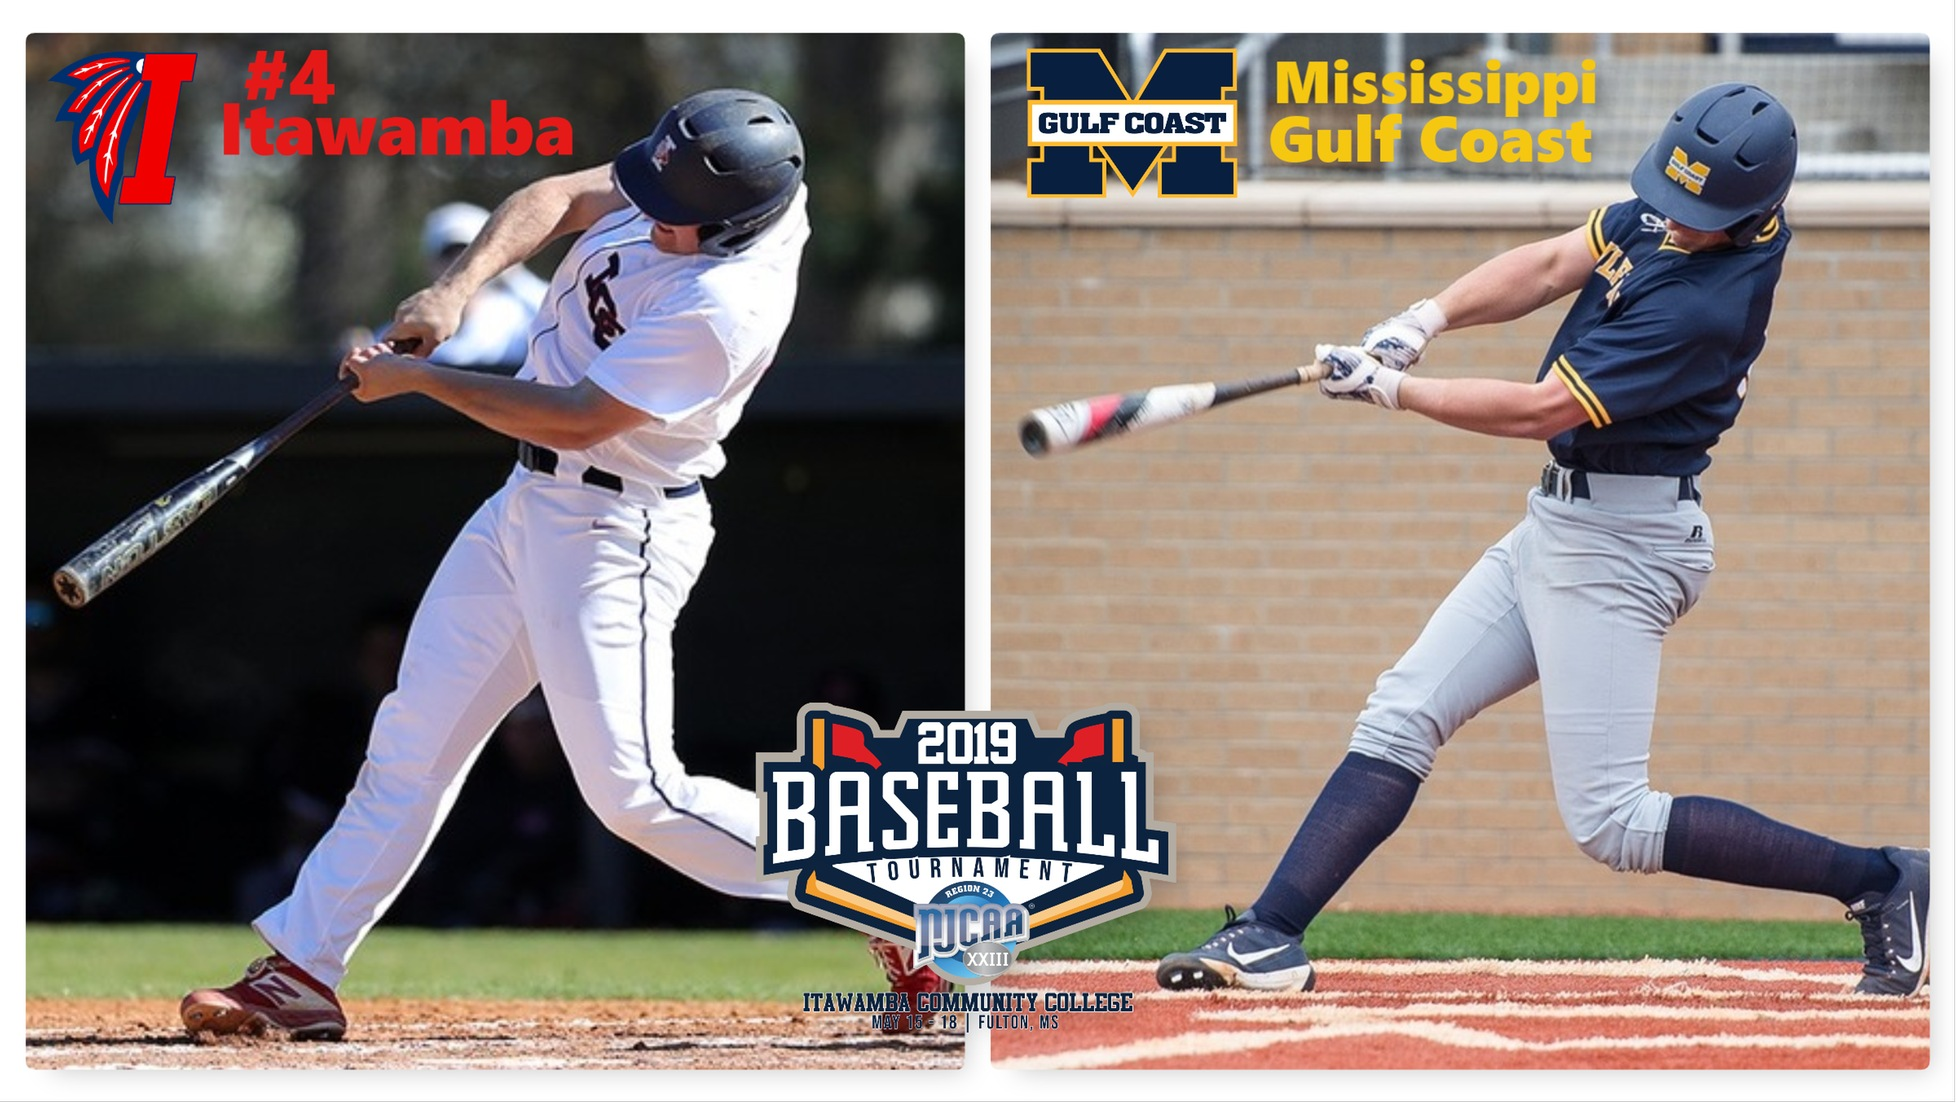 MGCCC opens with host Itawamba in Region 23